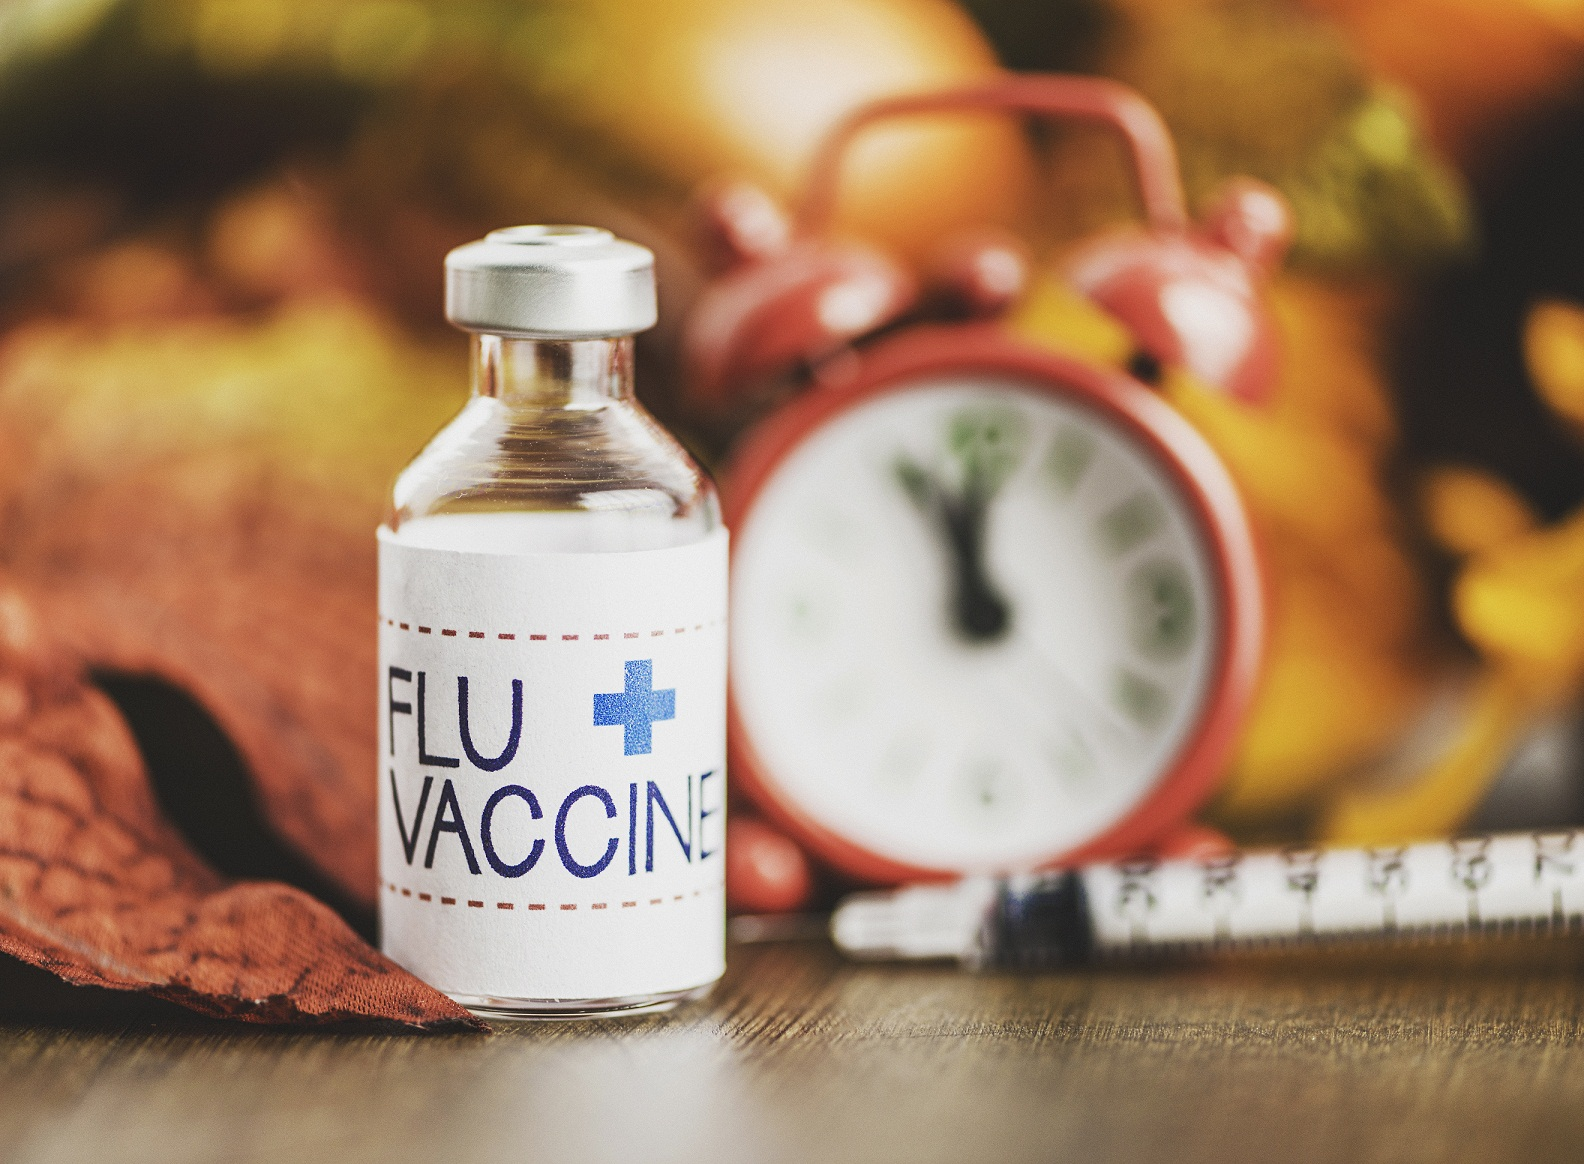 influenza vaccine and clock